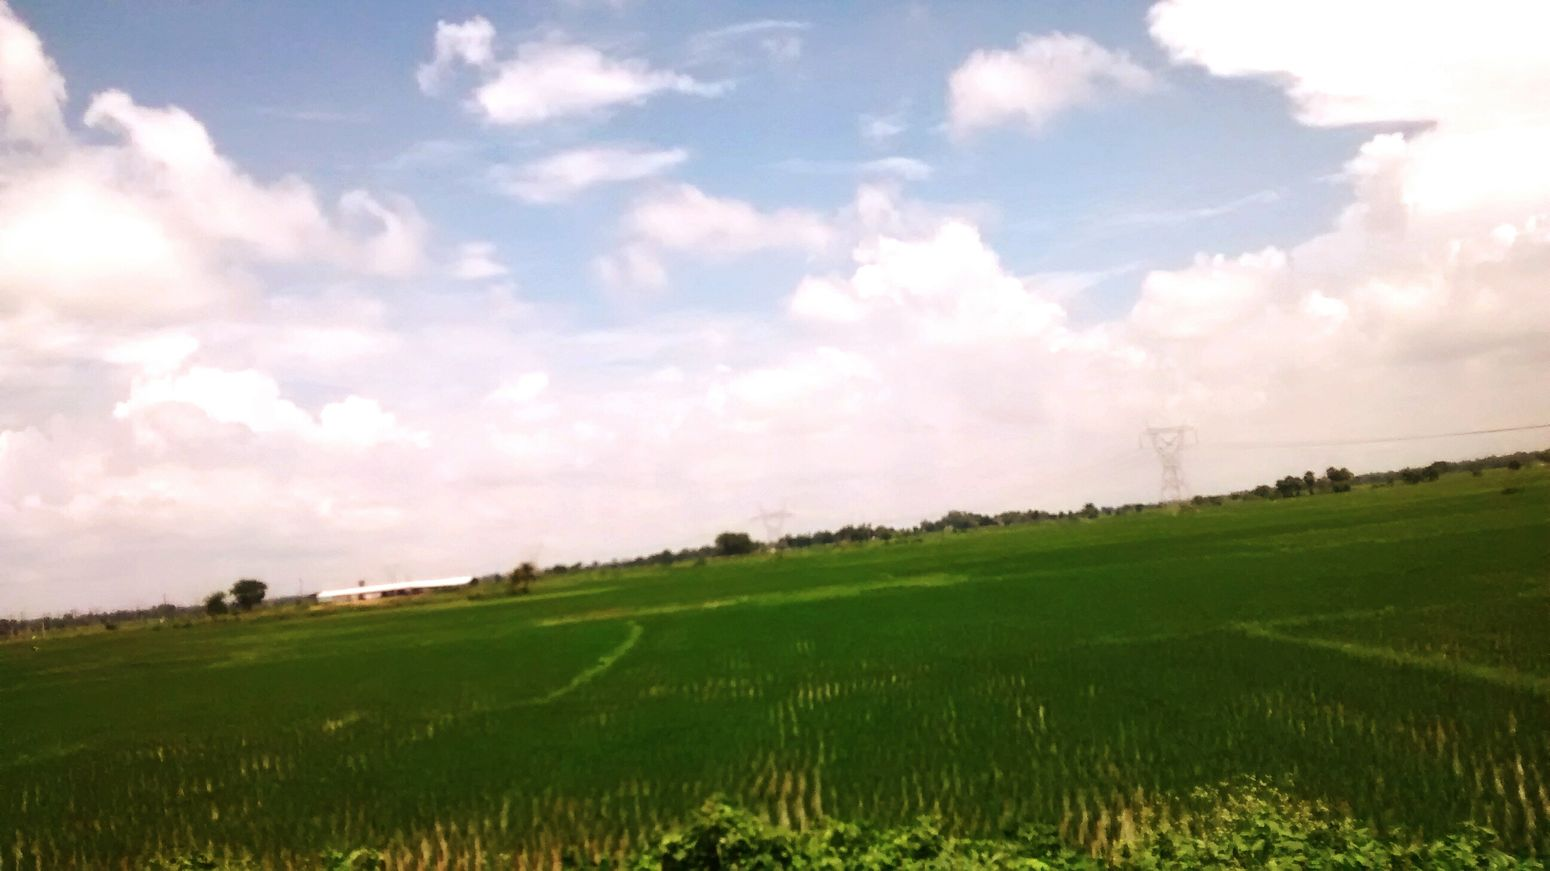 Village Village View Farming Paddy Field Landscape Agriculture Beauty In Nature Green Color